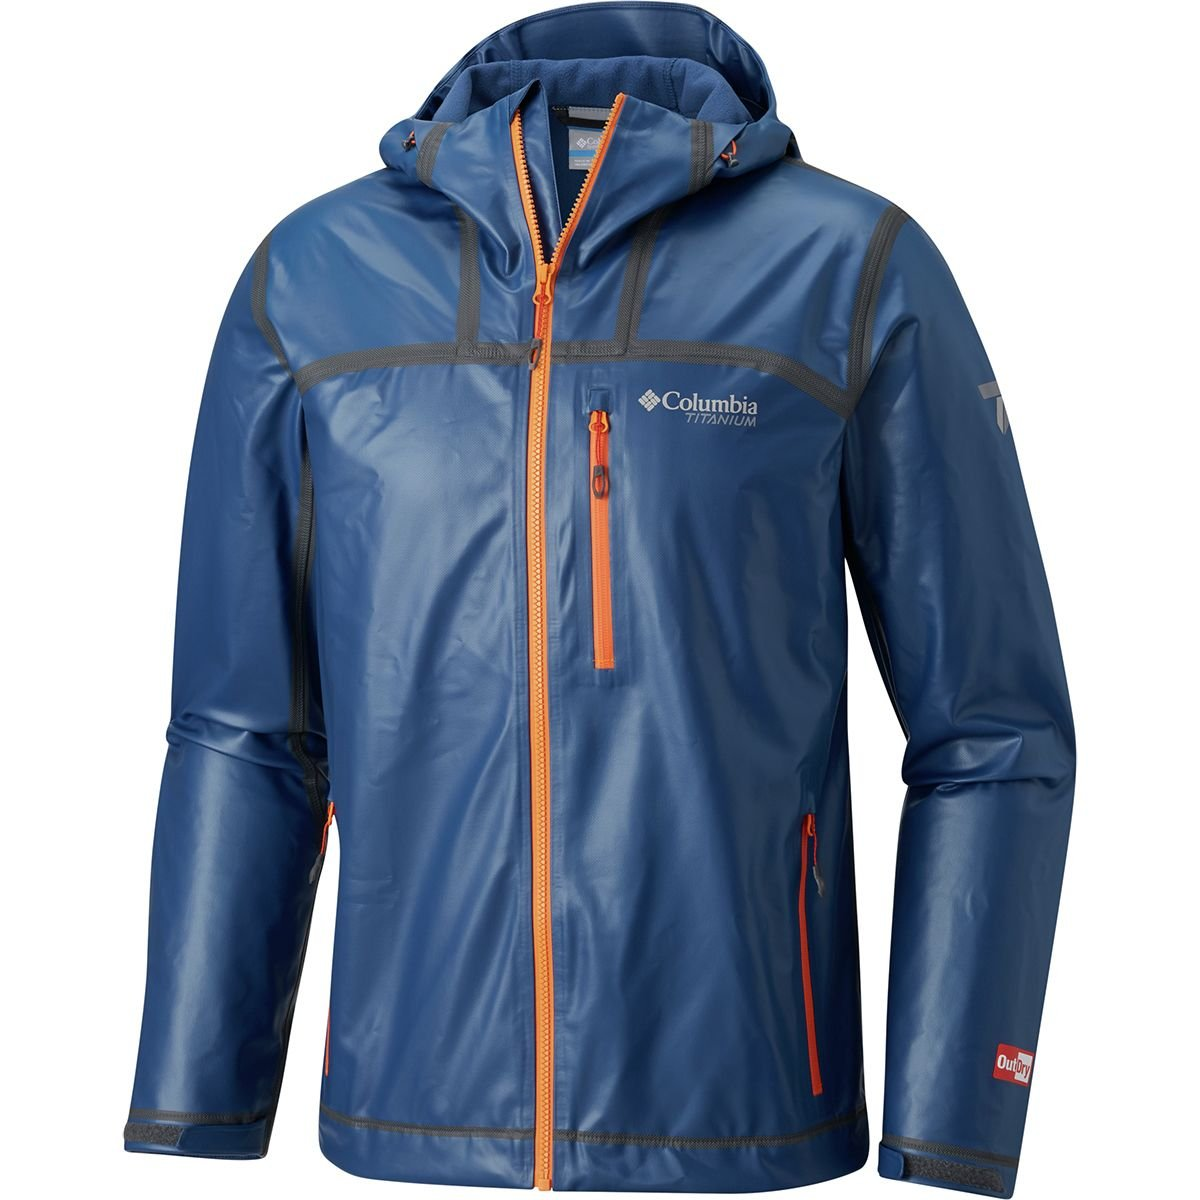 Columbia Titanium Outdry Ex Stretch Hooded Shell Jacket - Men's Carbon, XL